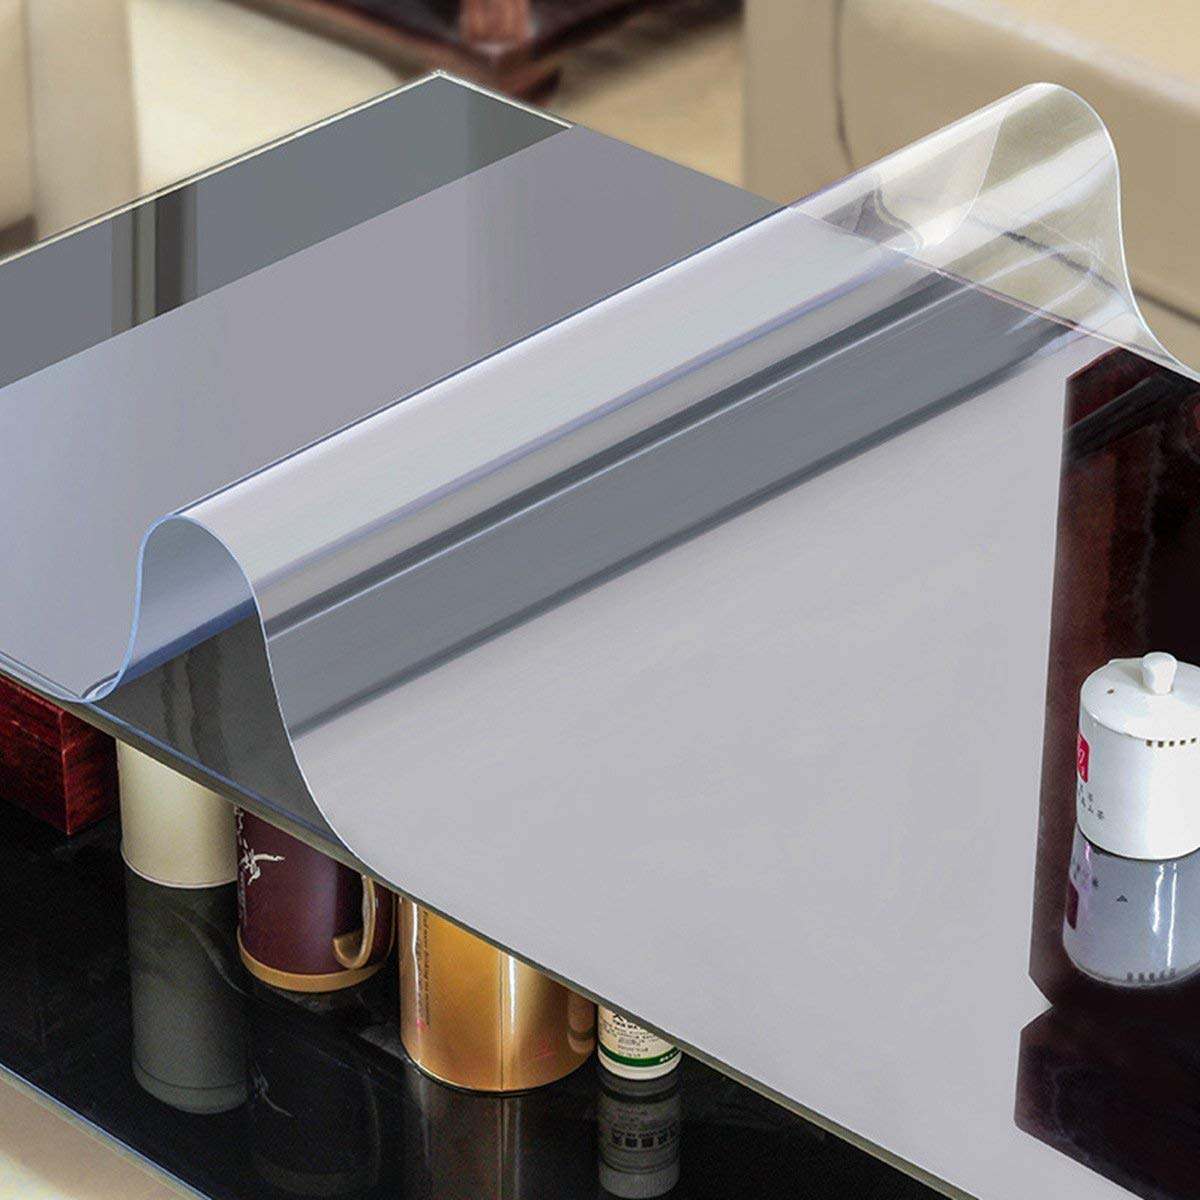 AiXiAng Custom 2.0mm Waterproof Clear PVC Table Cover Protector Rectangle 24 x 48 Inches Plastic Tablecloth for Dining Table, Desk,Lab Bench,Marble Top Table Pads Table Covers Coffe Table Protector by AI·X·IANG